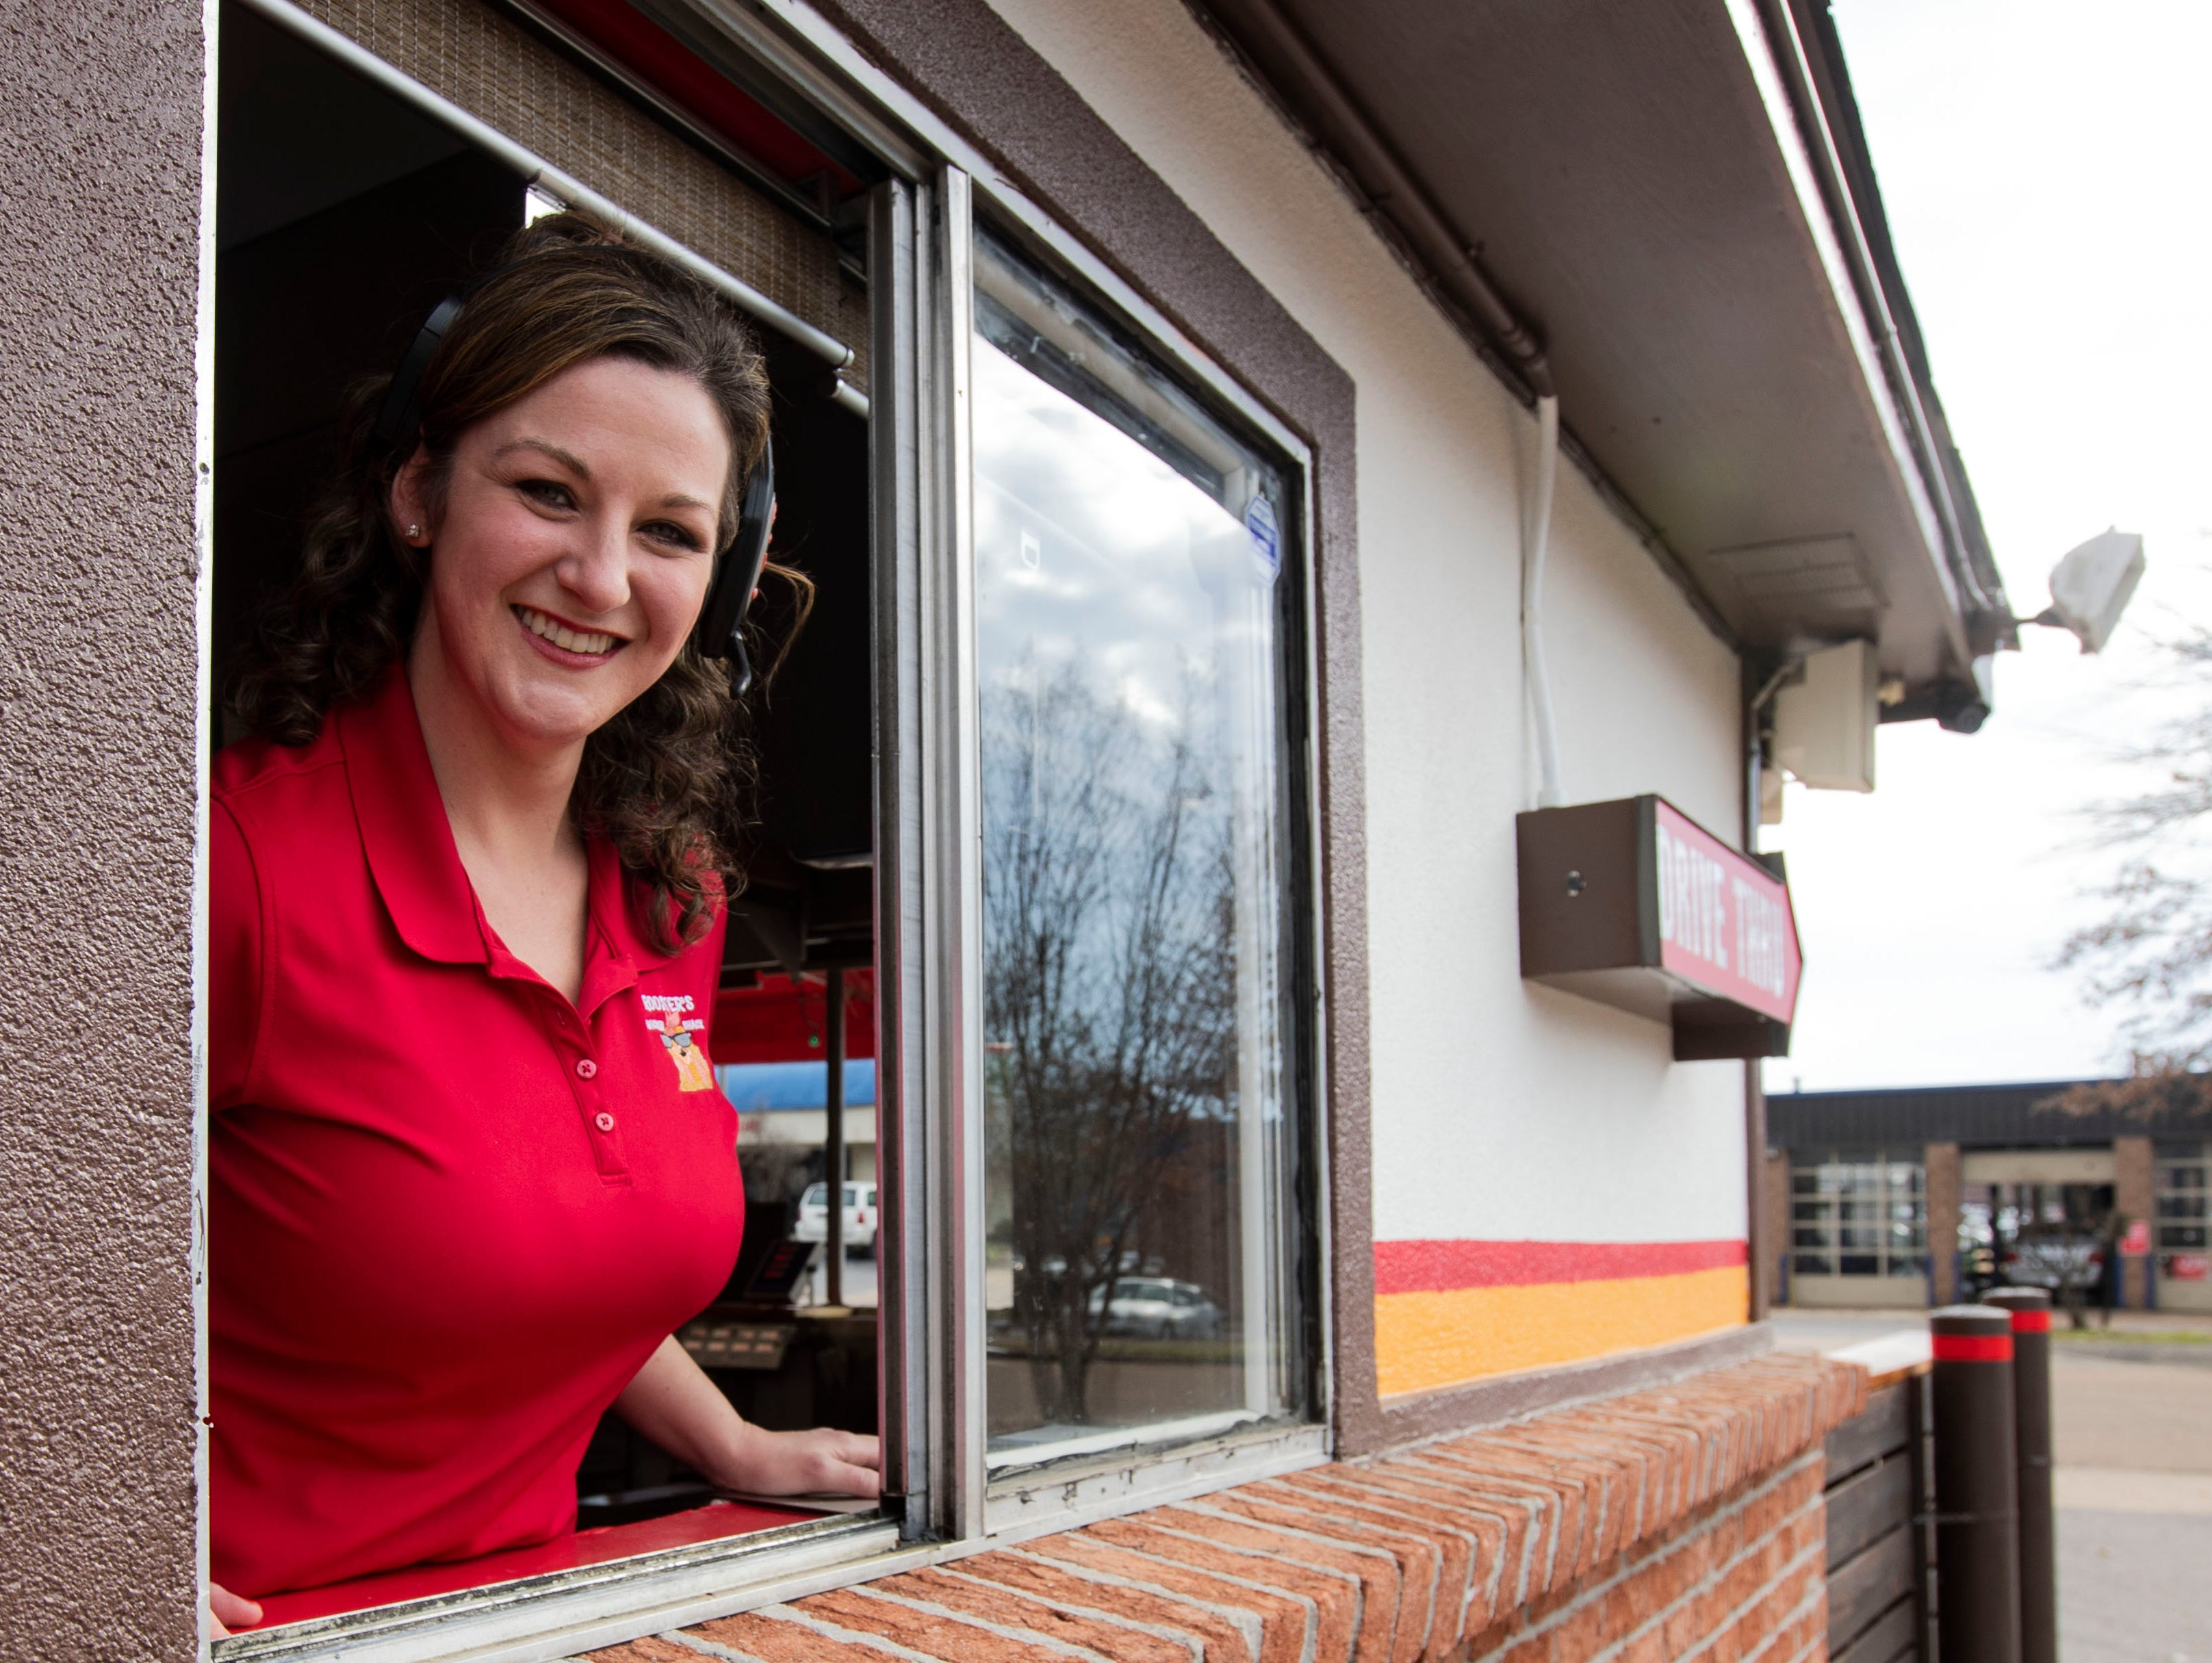 Amy Arrington is the owner of Rooster's Chicken Shack, a fast food chicken restaurant located in Bartlett, Tenn.